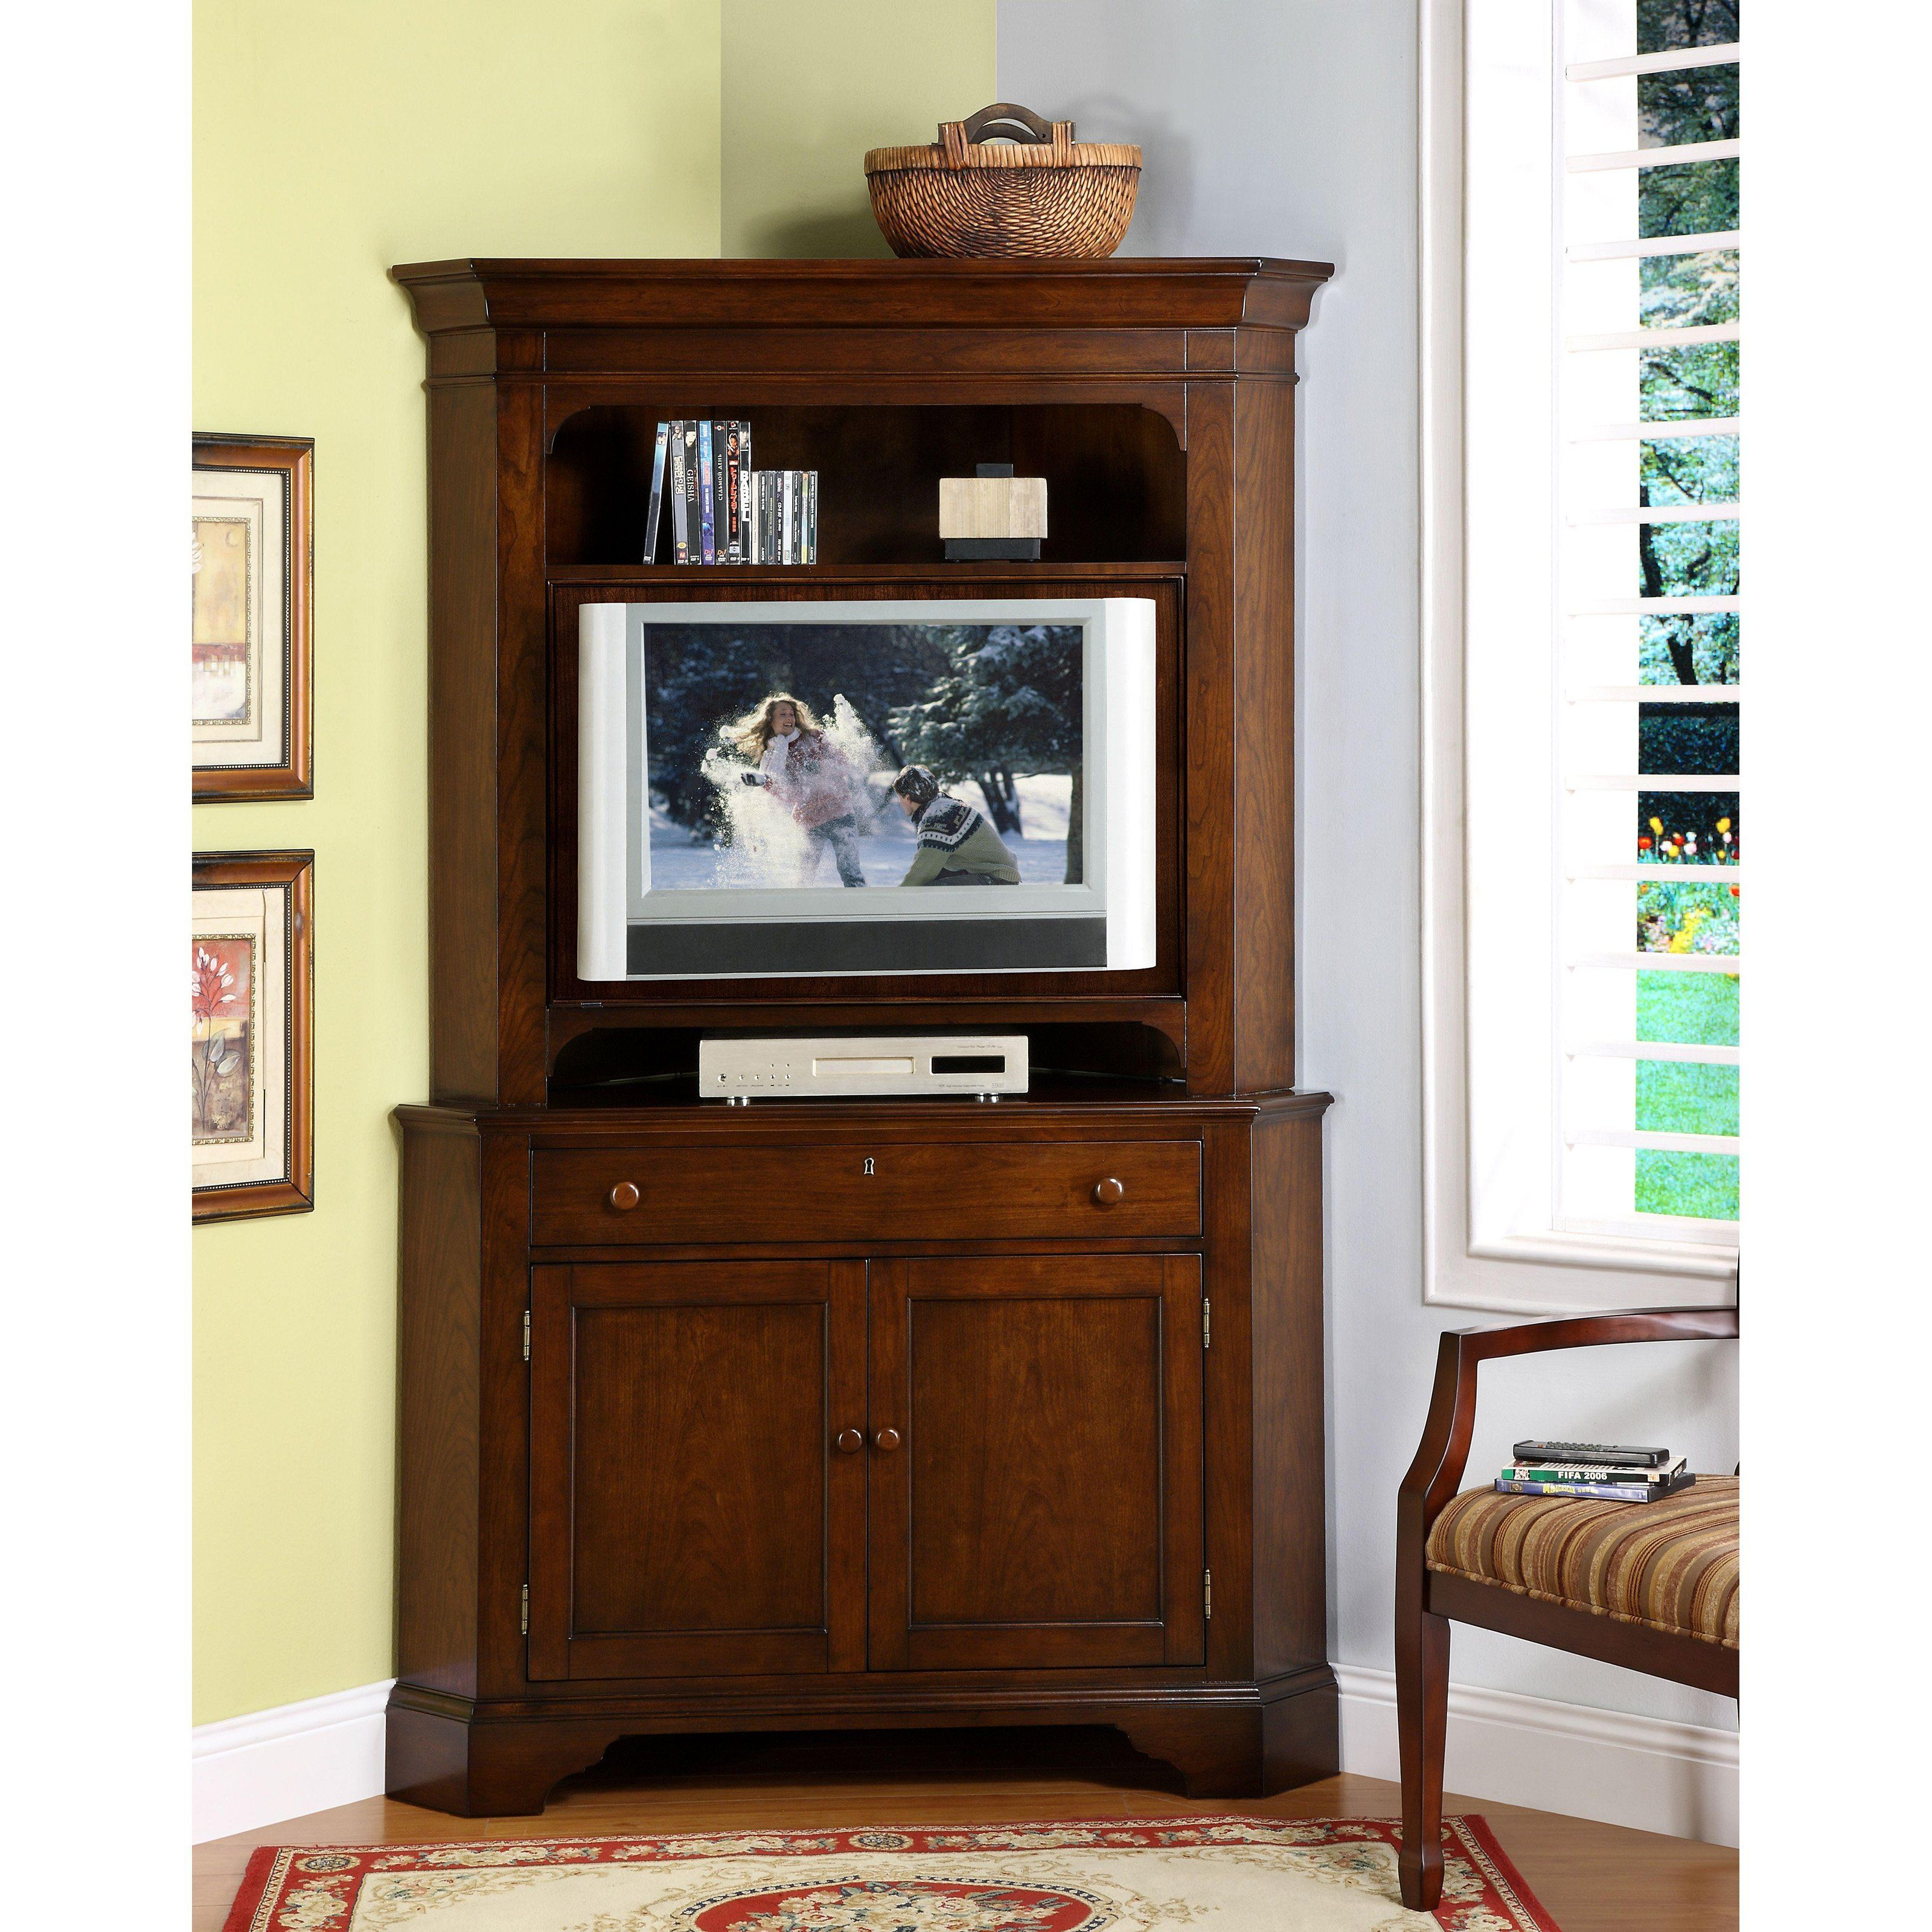 Cheap legends furniture cambridge fireplace media center in cherry - Corner Tv Cabinet With Optional Hutch Cherry Put Your Programs On A Pedestal With The Riverside Crossroads 45 In Corner Tv Cabinet With Optional Hutch